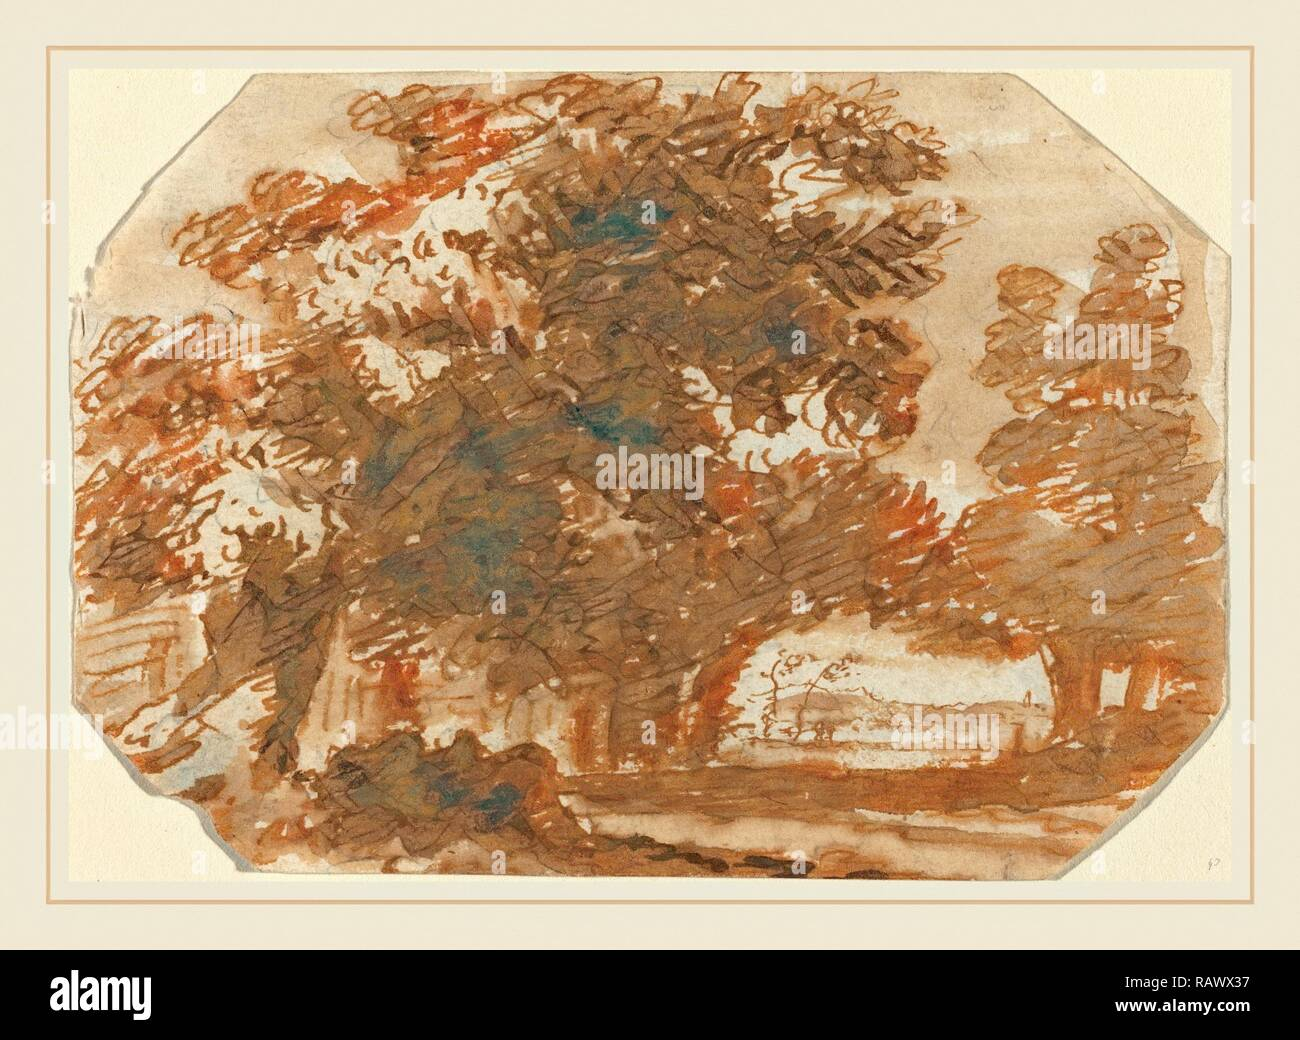 Claude Lorrain, French (1604-1605-1682), Grove of Trees, c. 1640, pen and brown ink with gray wash on laid paper reimagined - Stock Image